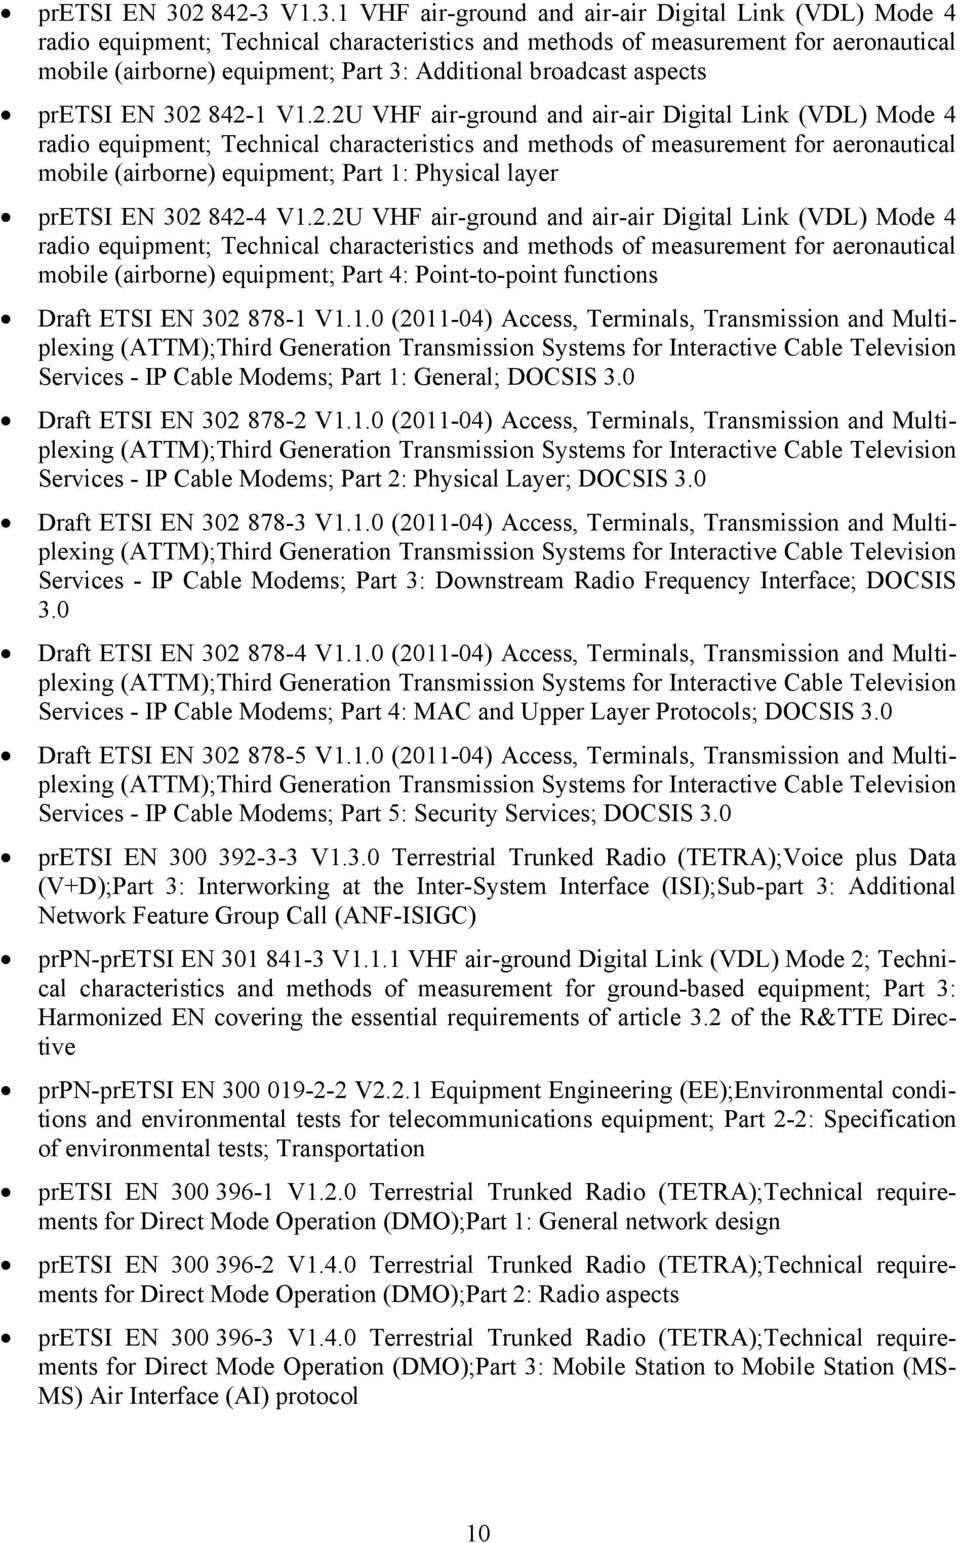 V1.3.1 VHF air-ground and air-air Digital Link (VDL) Mode 4 radio equipment; Technical characteristics and methods of measurement for aeronautical mobile (airborne) equipment; Part 3: Additional